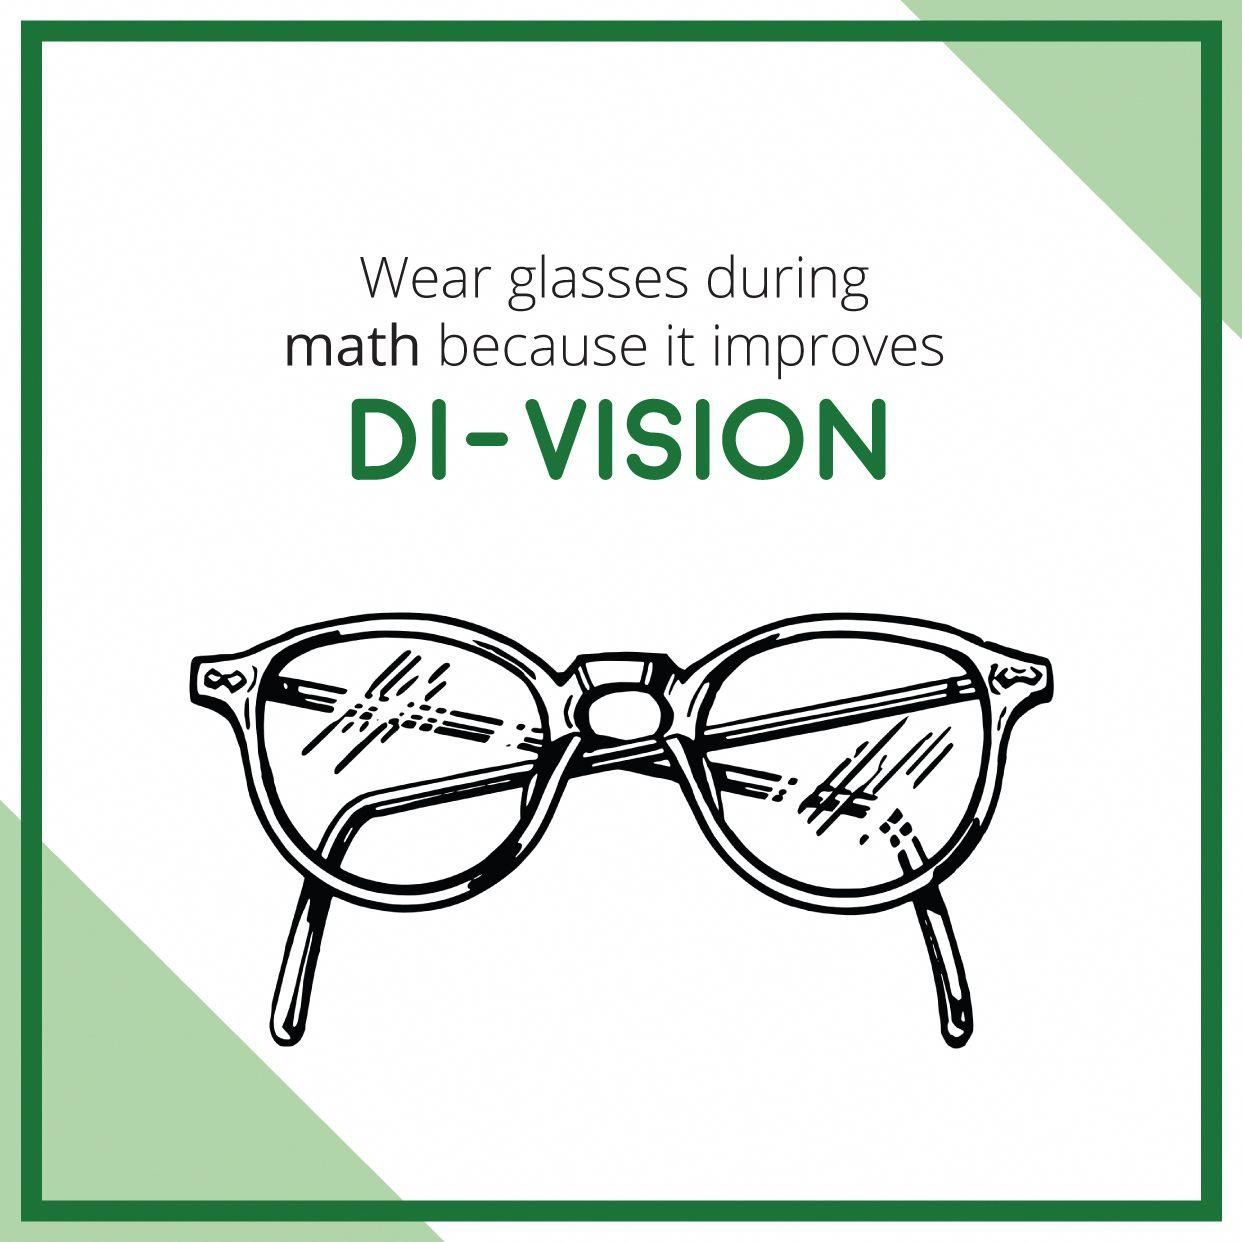 Glasses Improve Di Vision Puns Make Friends Improve Your Vision With Glasses And Never Squint In A Classroom Again C Optometry Humor School Humor Eye Jokes